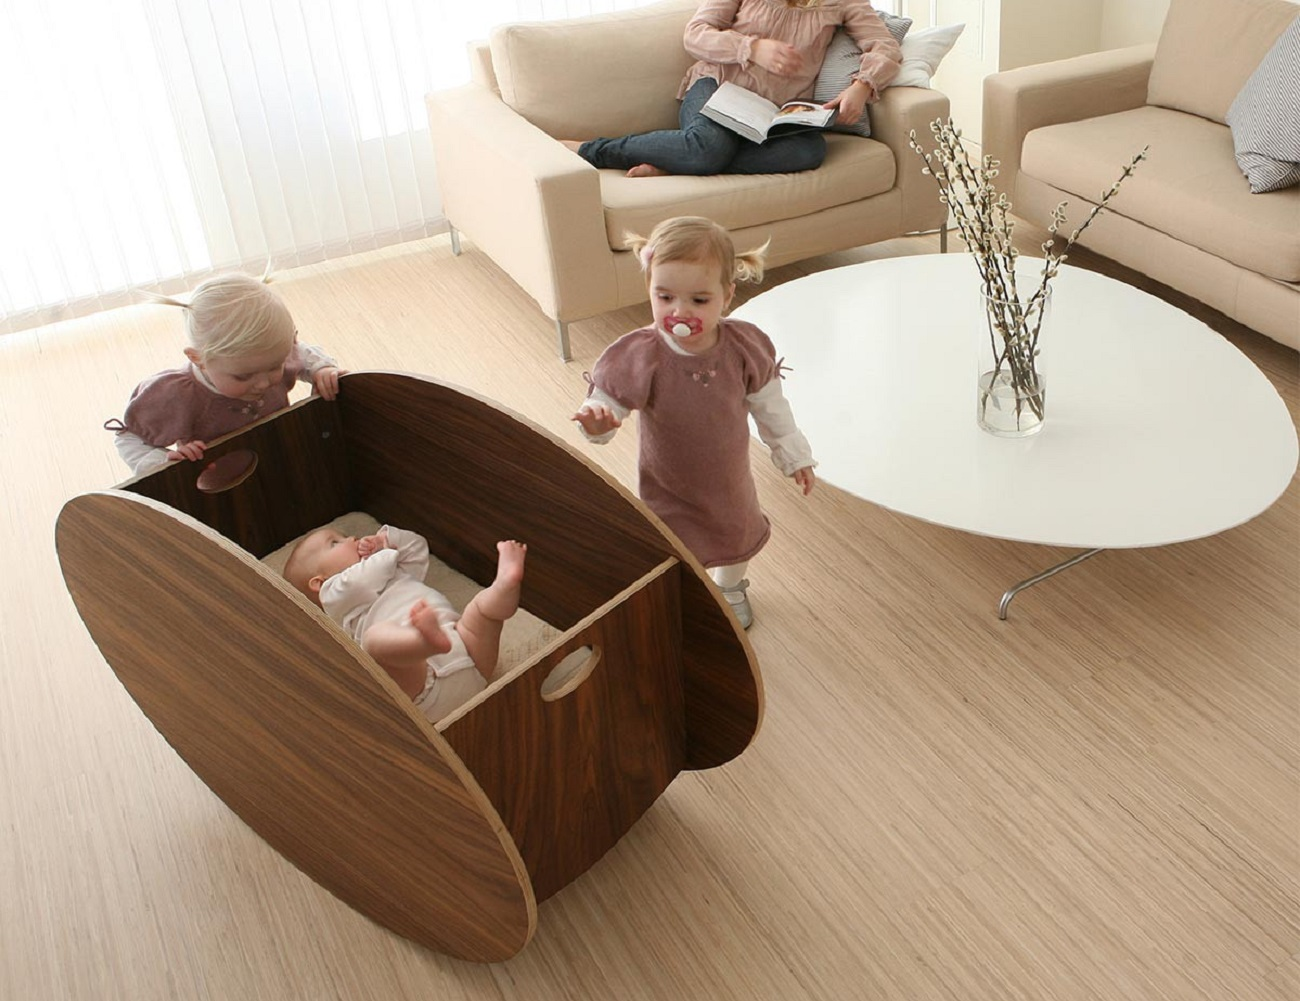 So-Ro Walnut Cradle